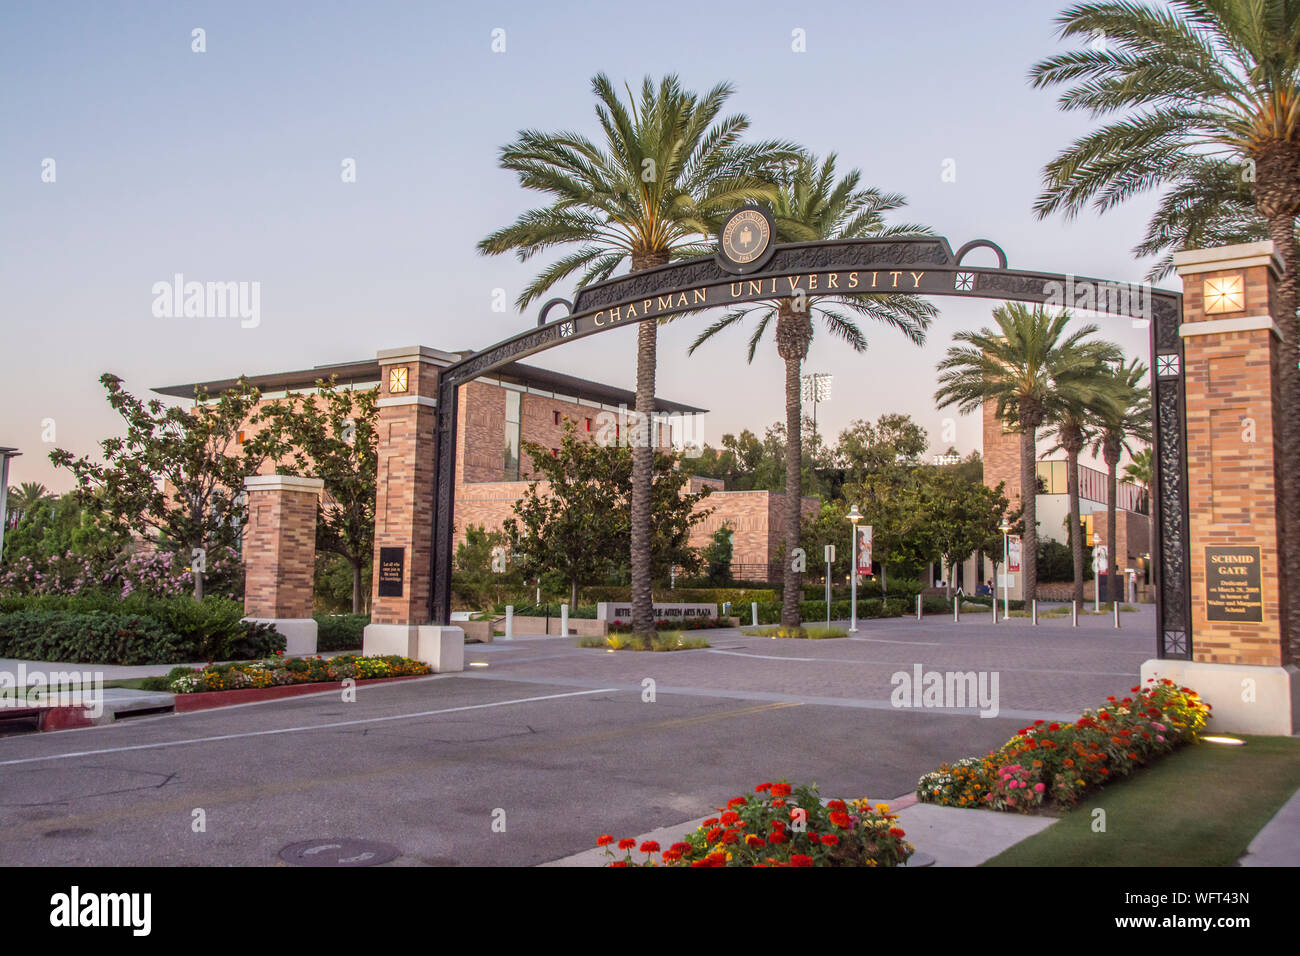 Chapman University, a private university in the city of Orange, California, USA Stock Photo